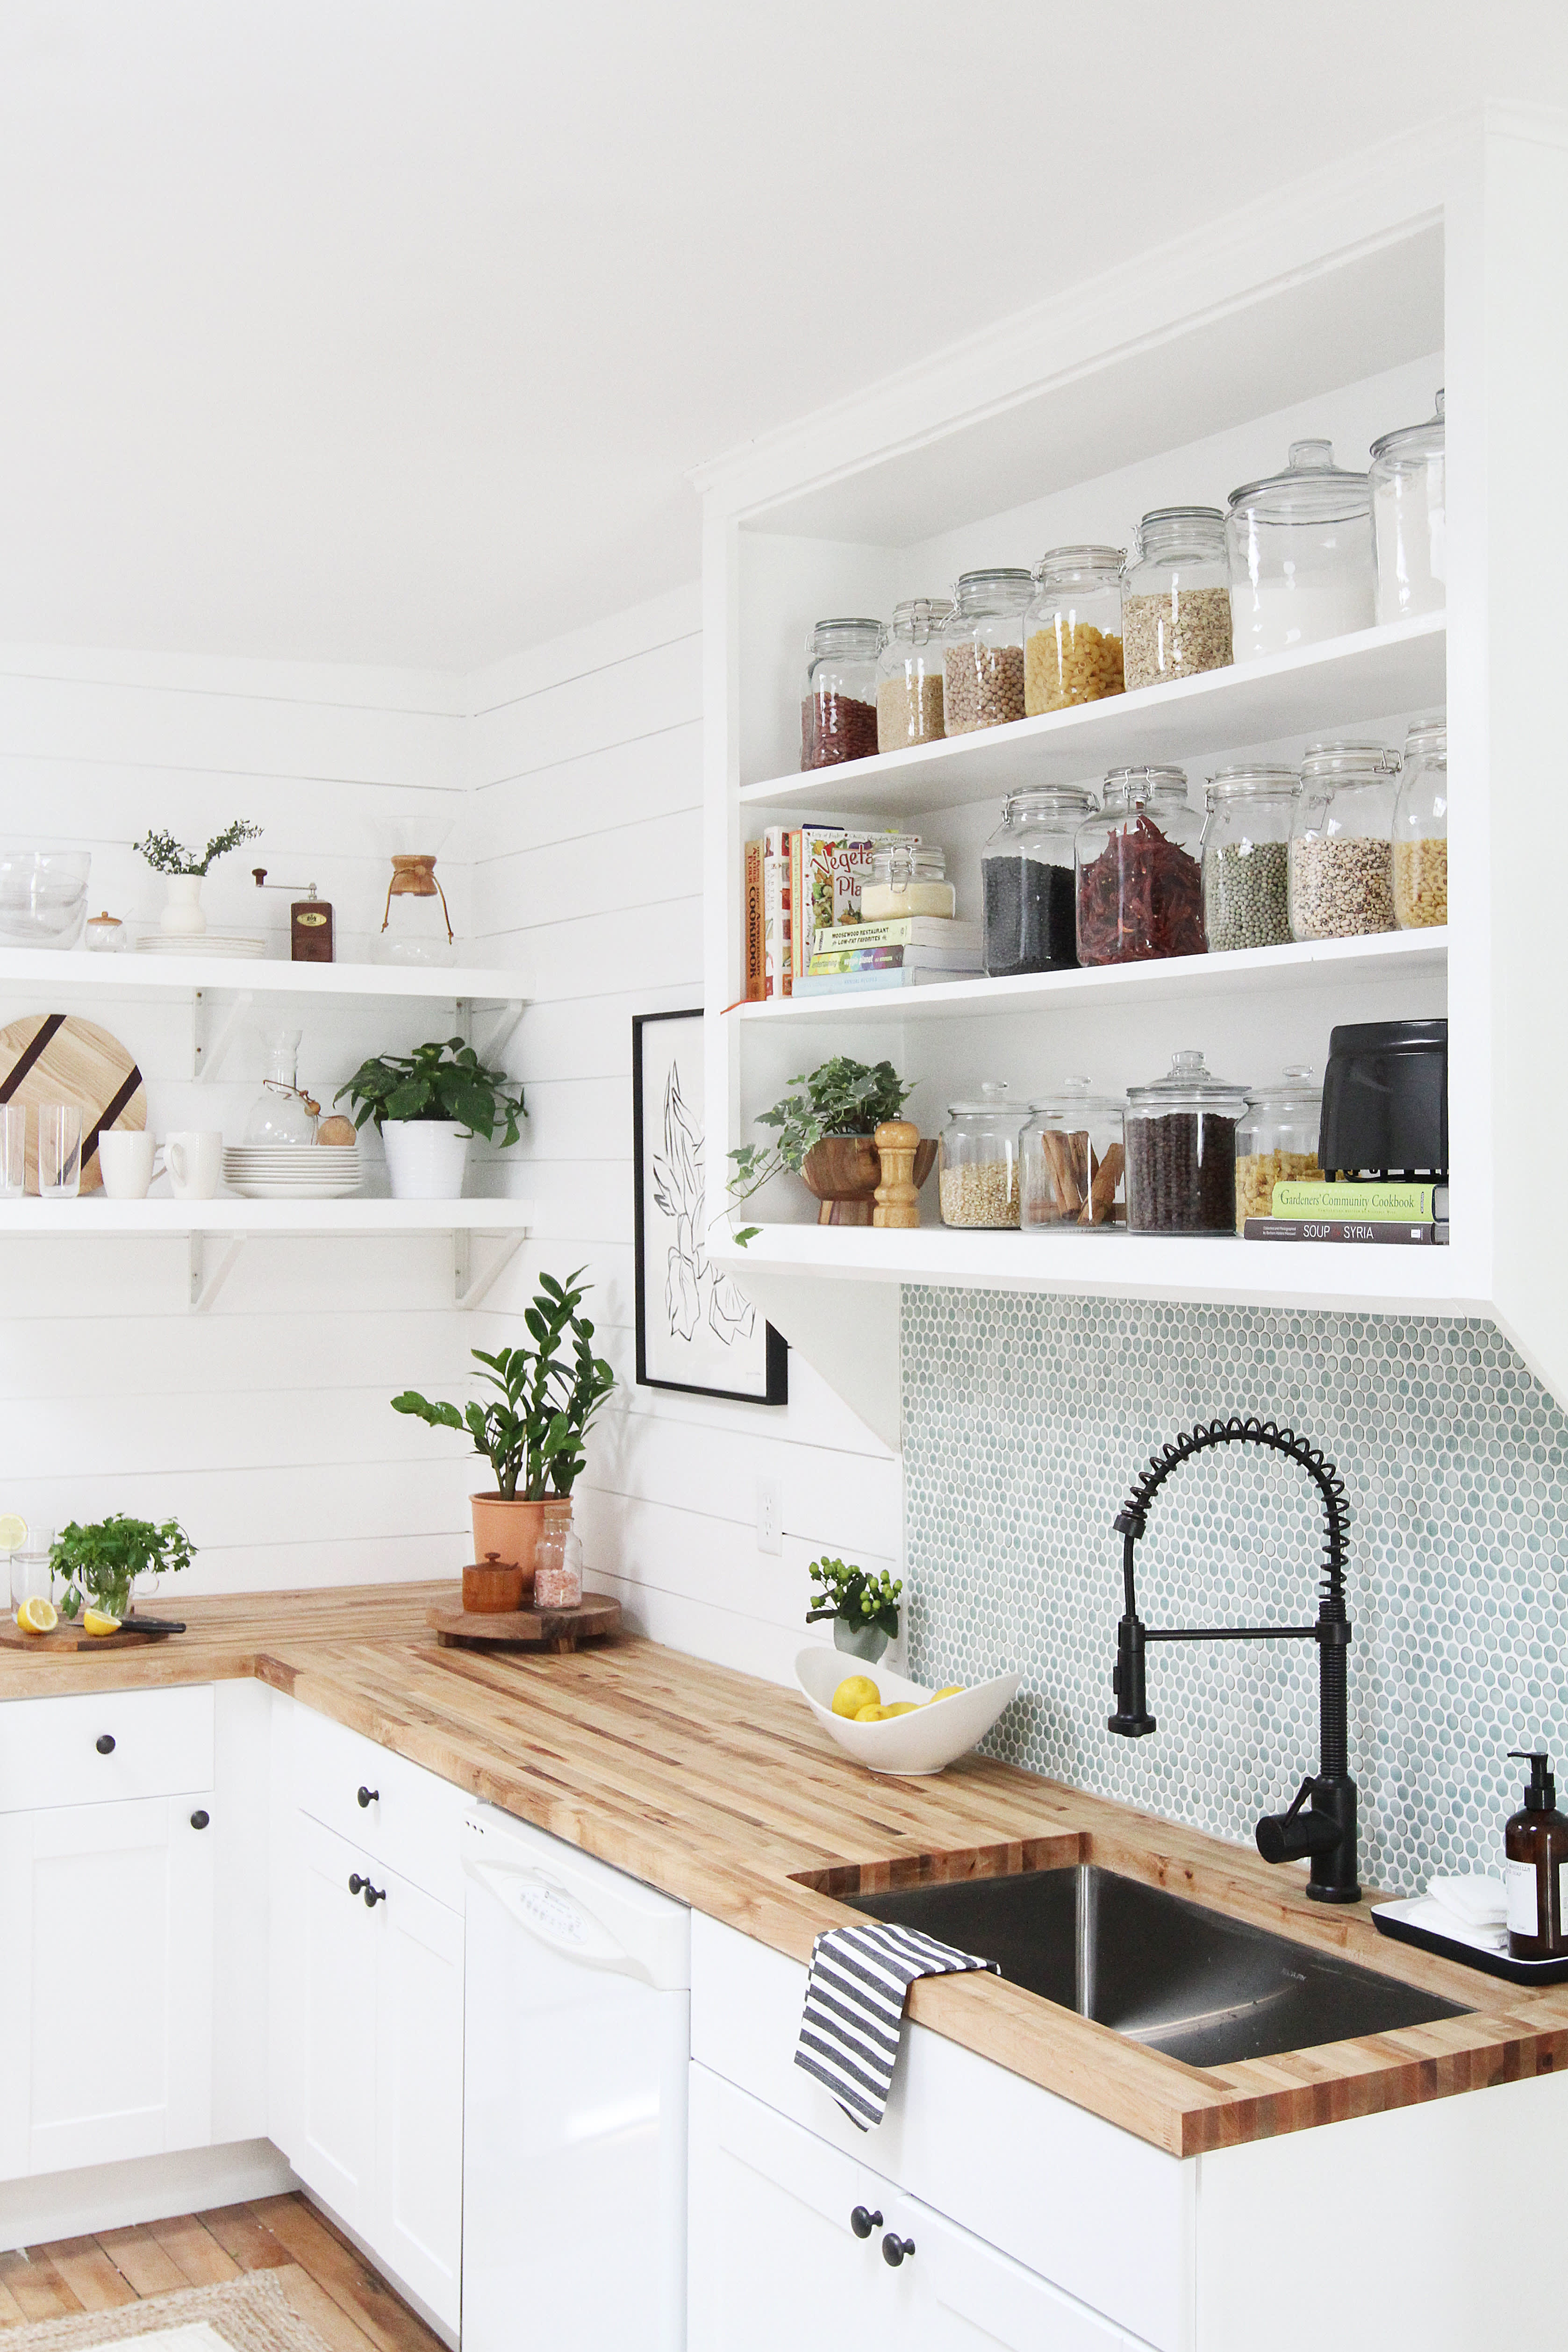 Kitchen Remodel Cost How To Save Money Tips Apartment Therapy